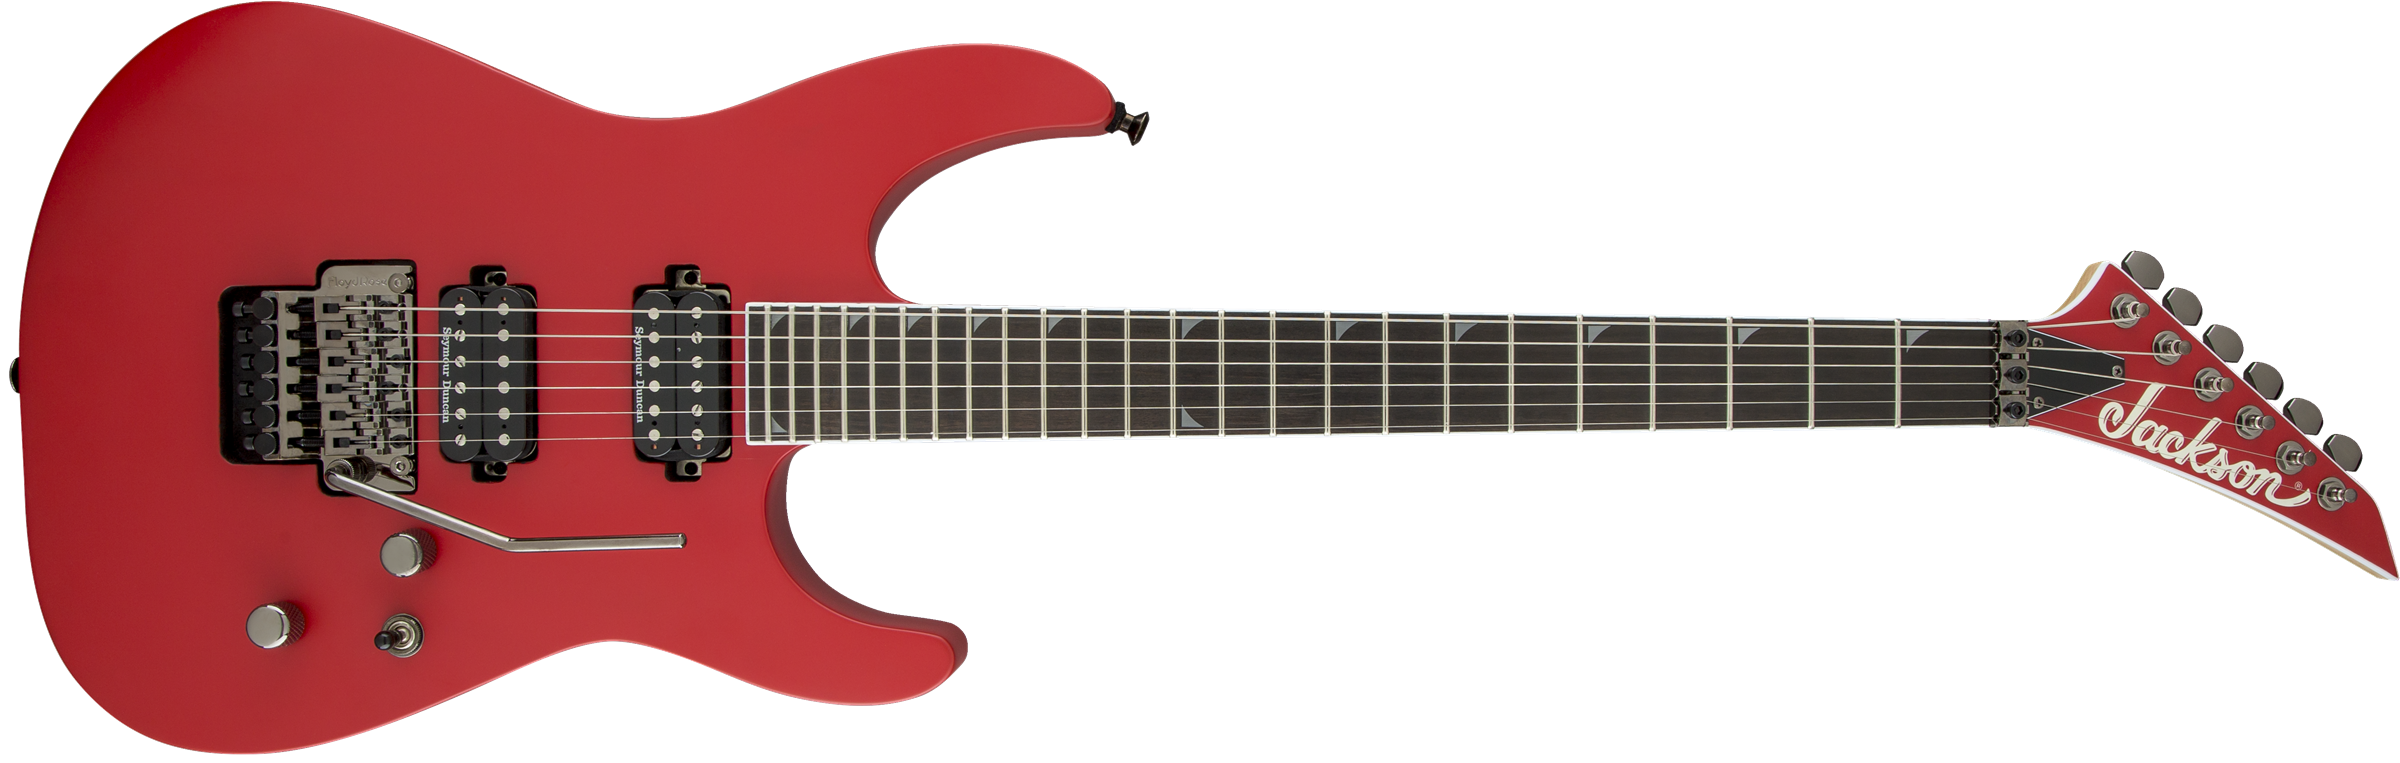 wjackson soloist wiring diagram,soloist \u2022 highcare asia  2914222539_gtr_frt_001_rr guitars pro series soloist™ sl2, ebony fingerboard, satin red at highcare wjackson soloist wiring diagram